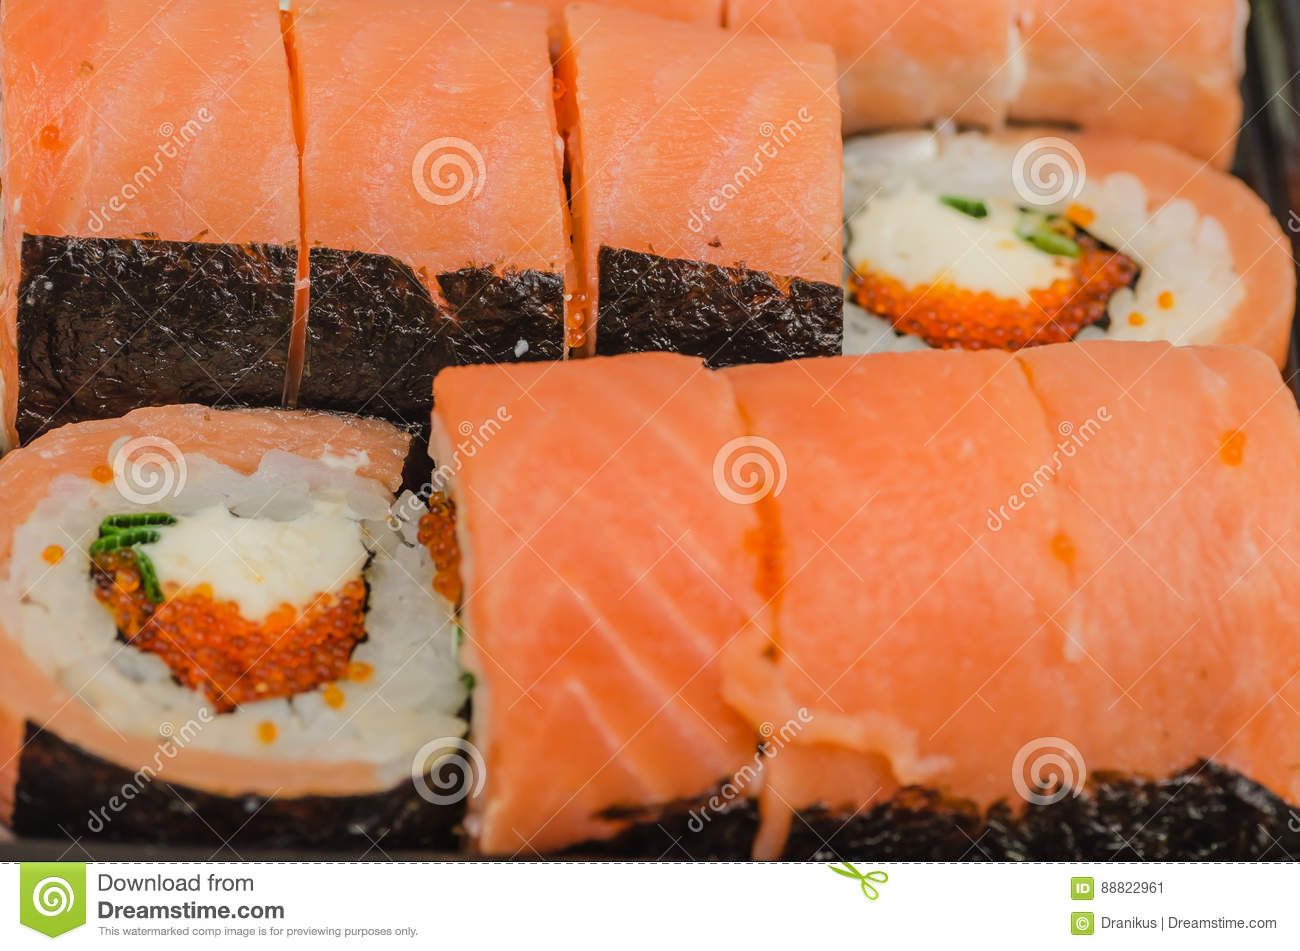 Lsushi Food Rice Product Cooked Salmon Seafood Fish Japanese